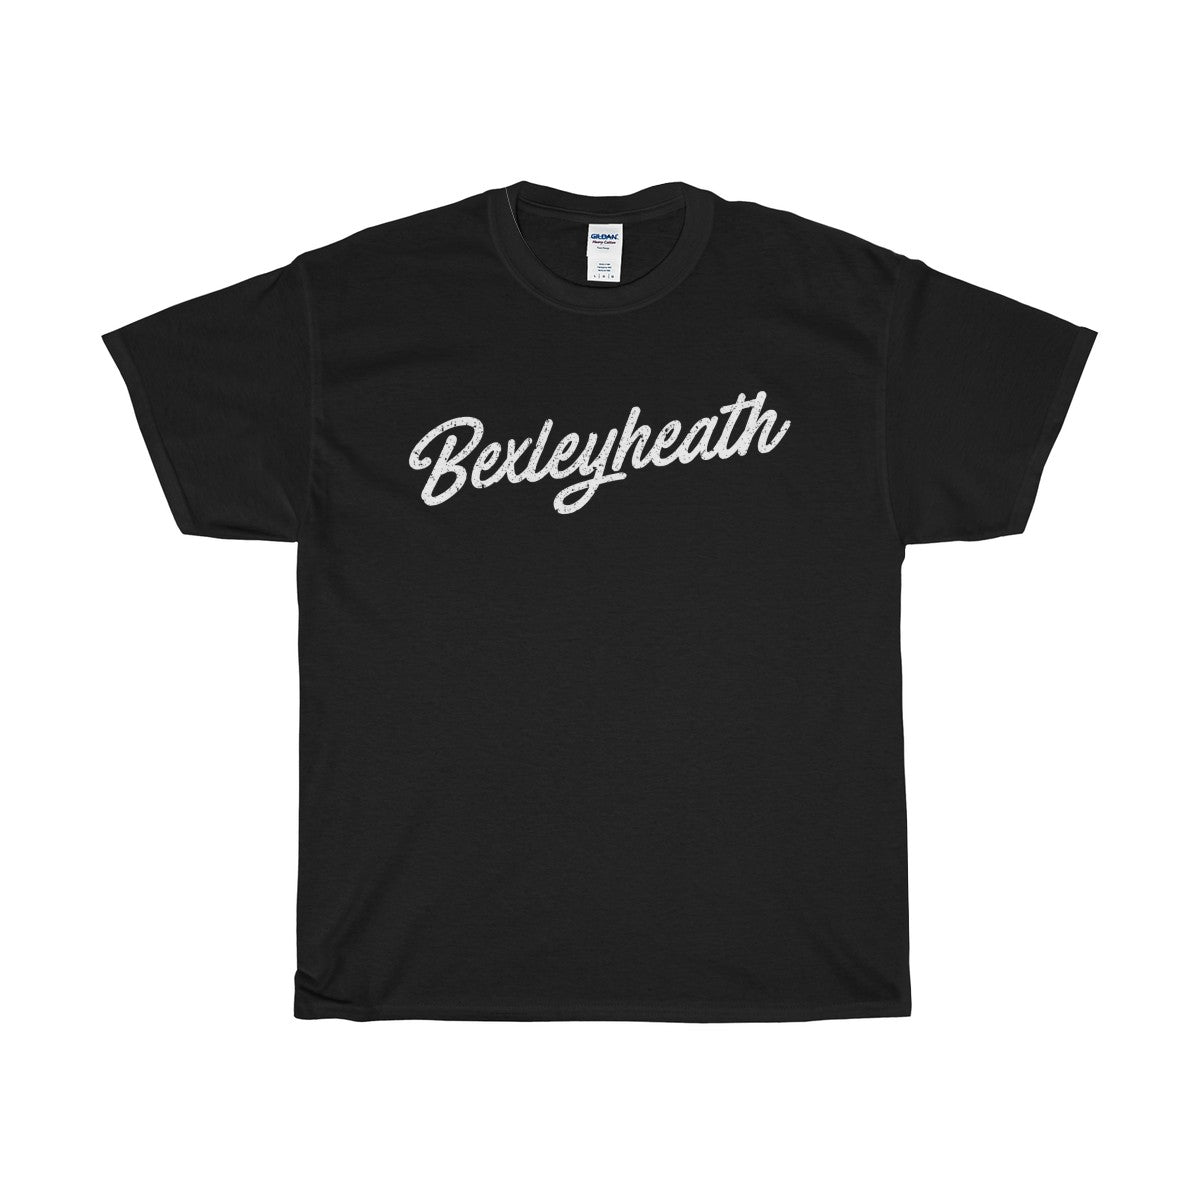 Bexleyheath Scripted T-Shirt